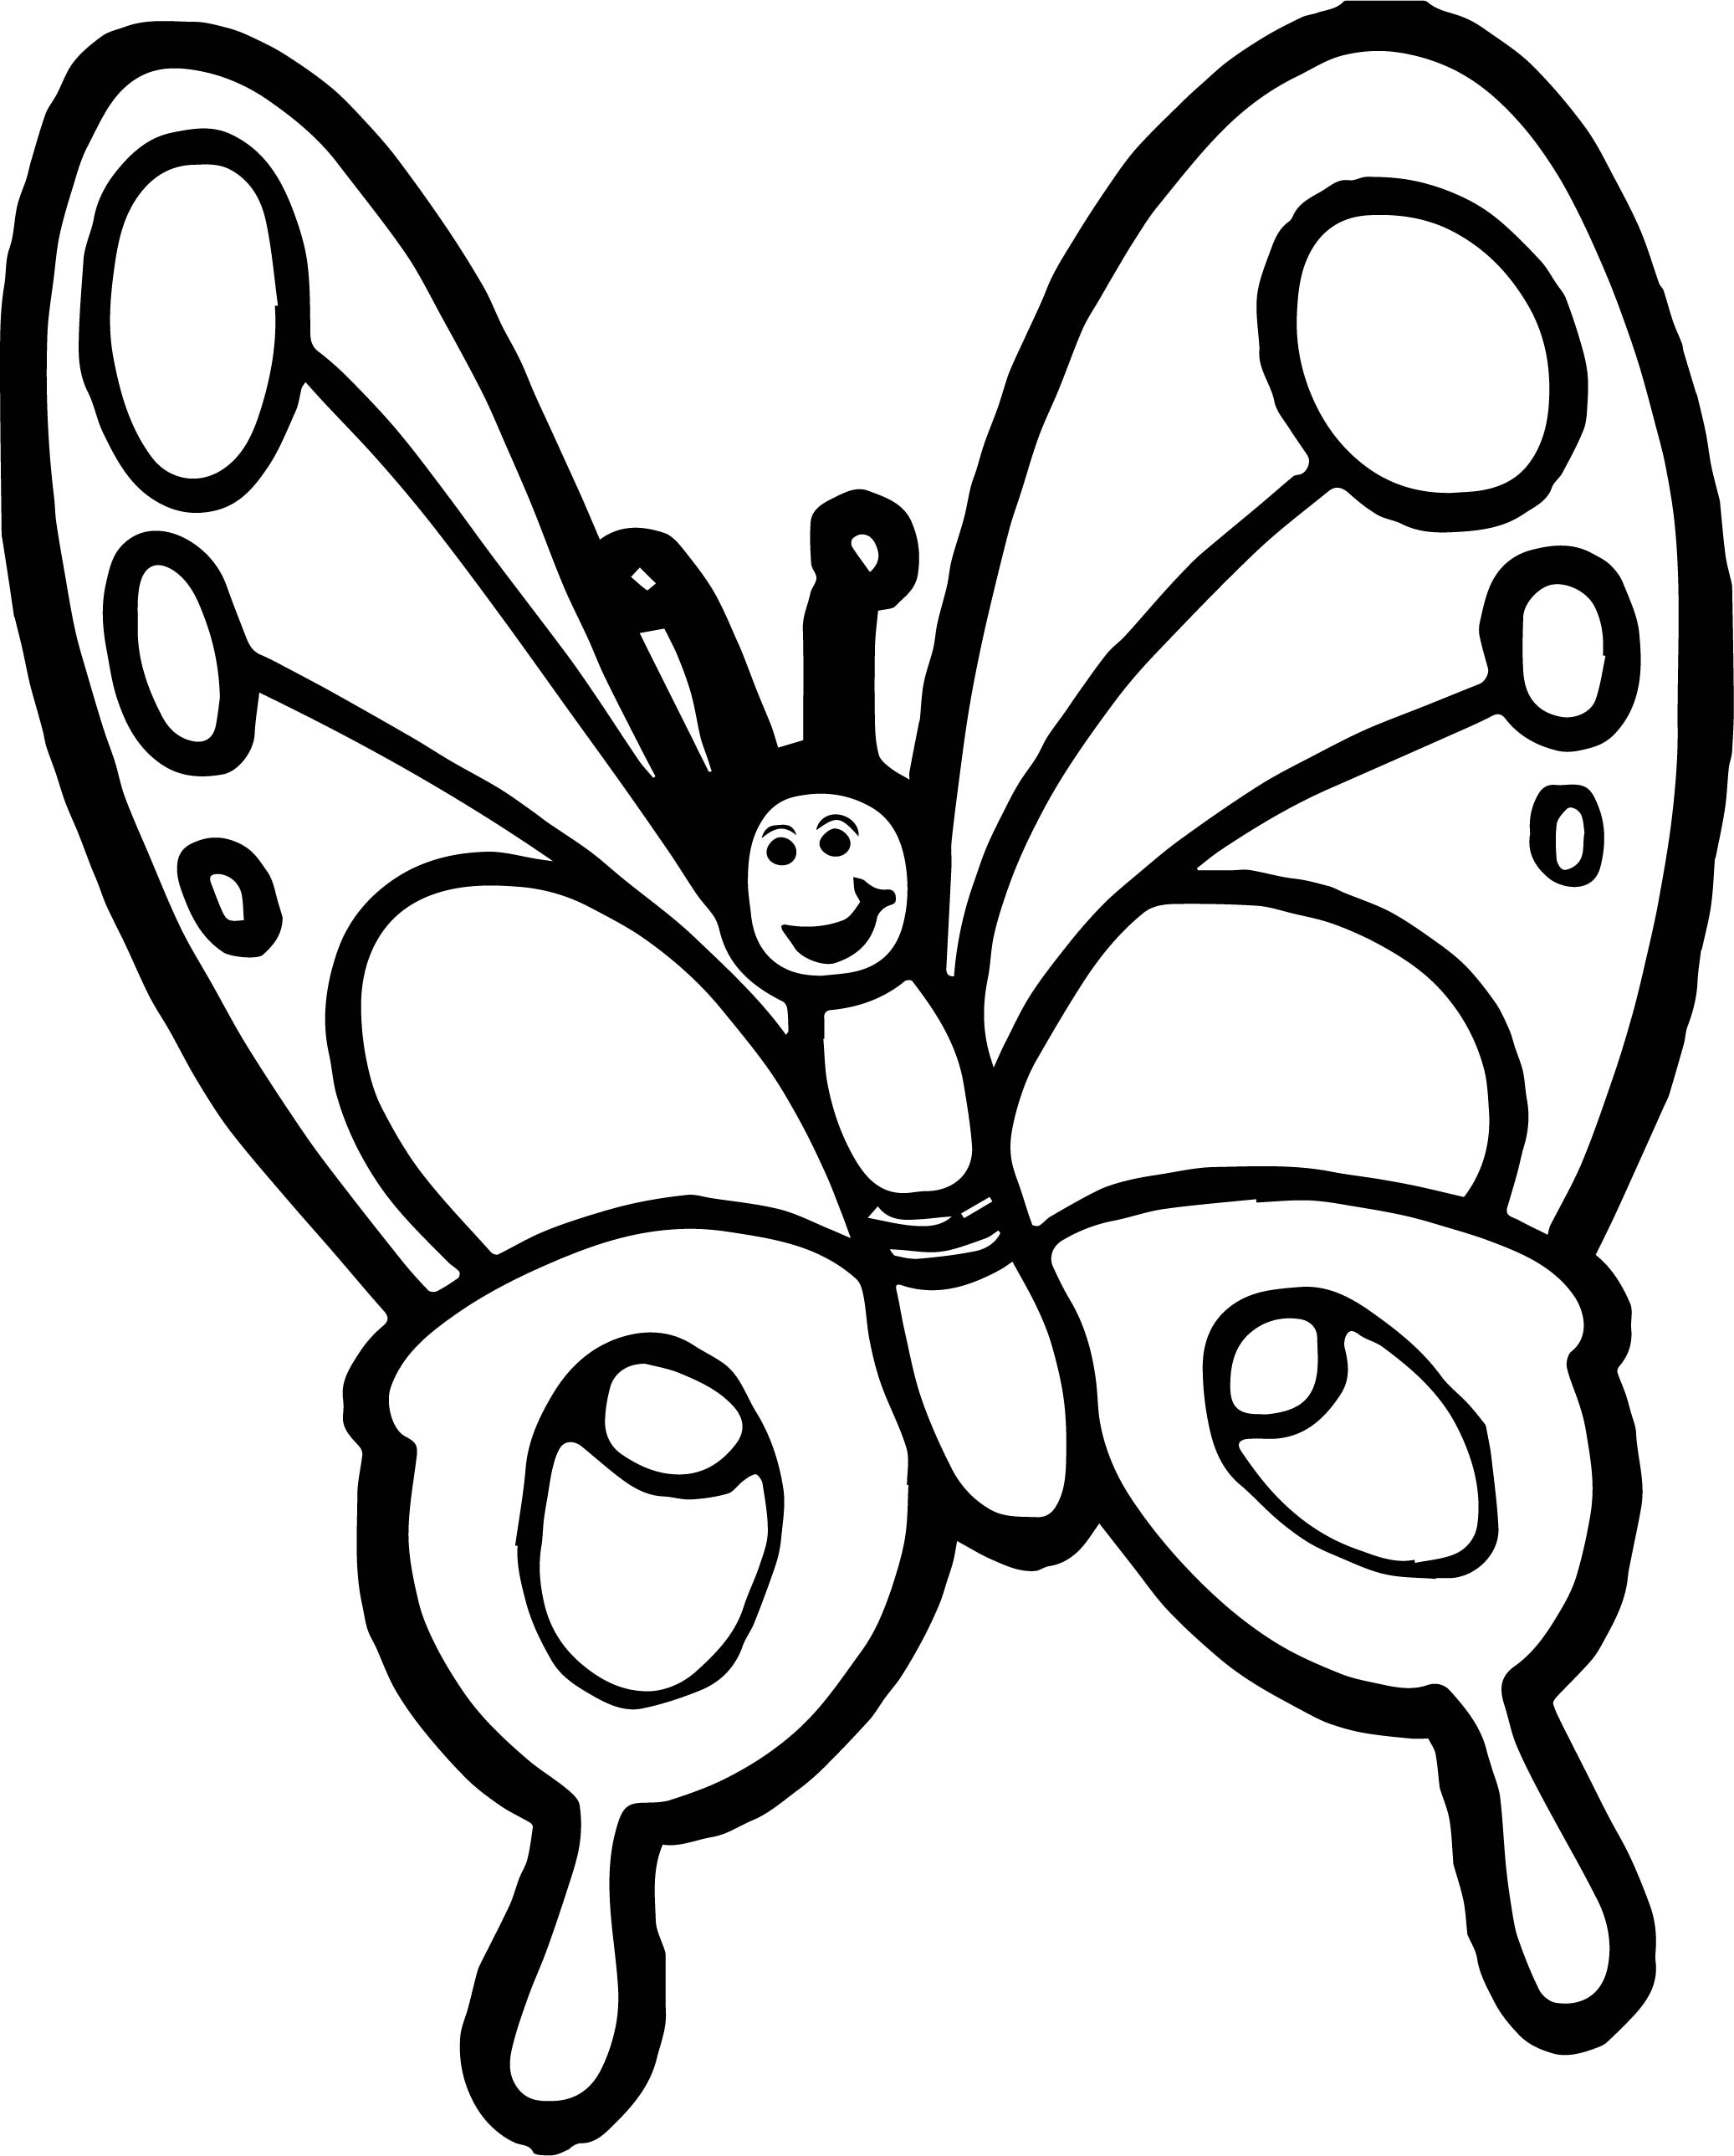 2073x2577 Coloring Pages For Kids Butterfly Blue Morpho Insects Images Flies